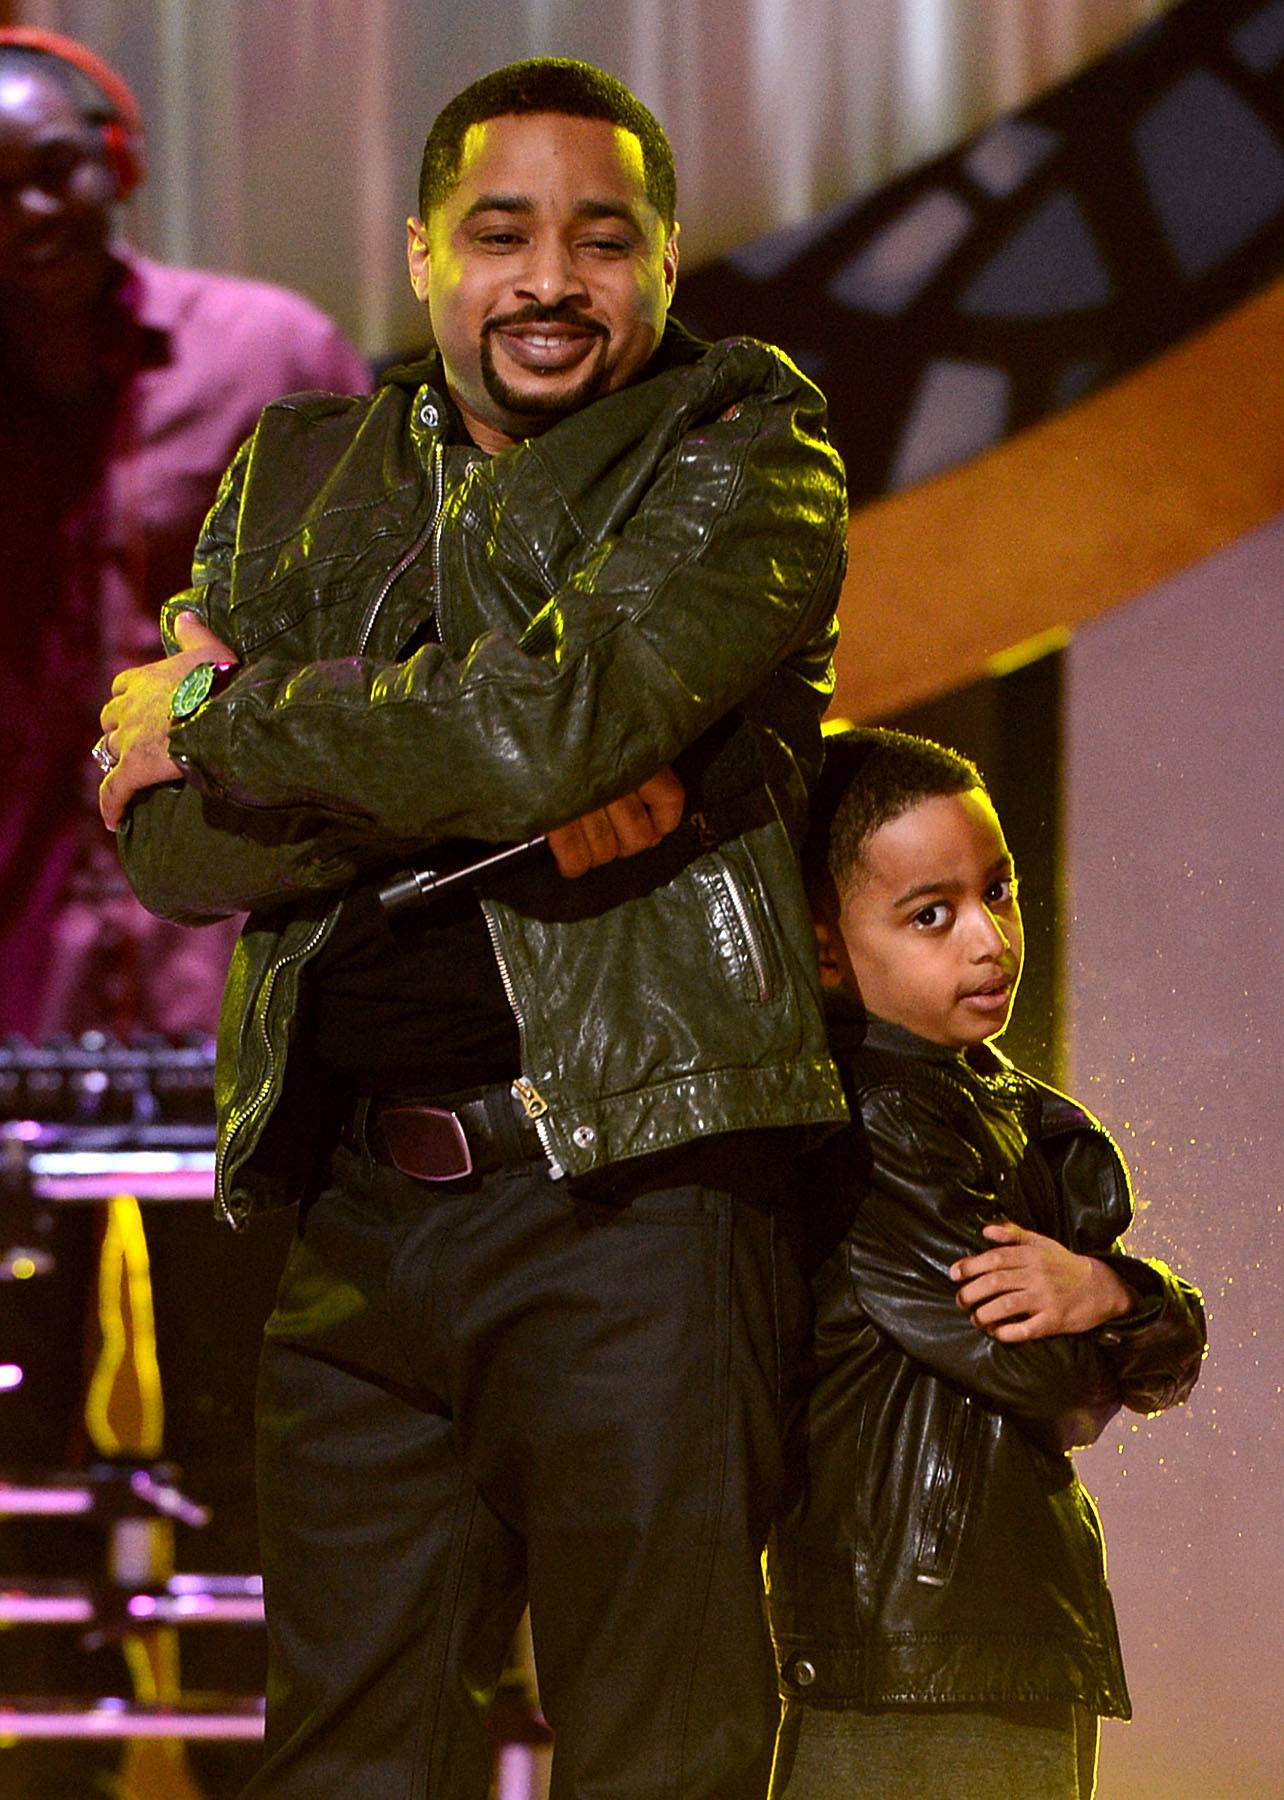 Smokie Norful - Smokie Norful holds many titles, such as educator, pastor, father, humanitarian, singer and husband. His five platinum-selling compilations and many notable performances only slightly describe how God has blessed him. (Photo: Kevin Winter/Getty Images for BET)